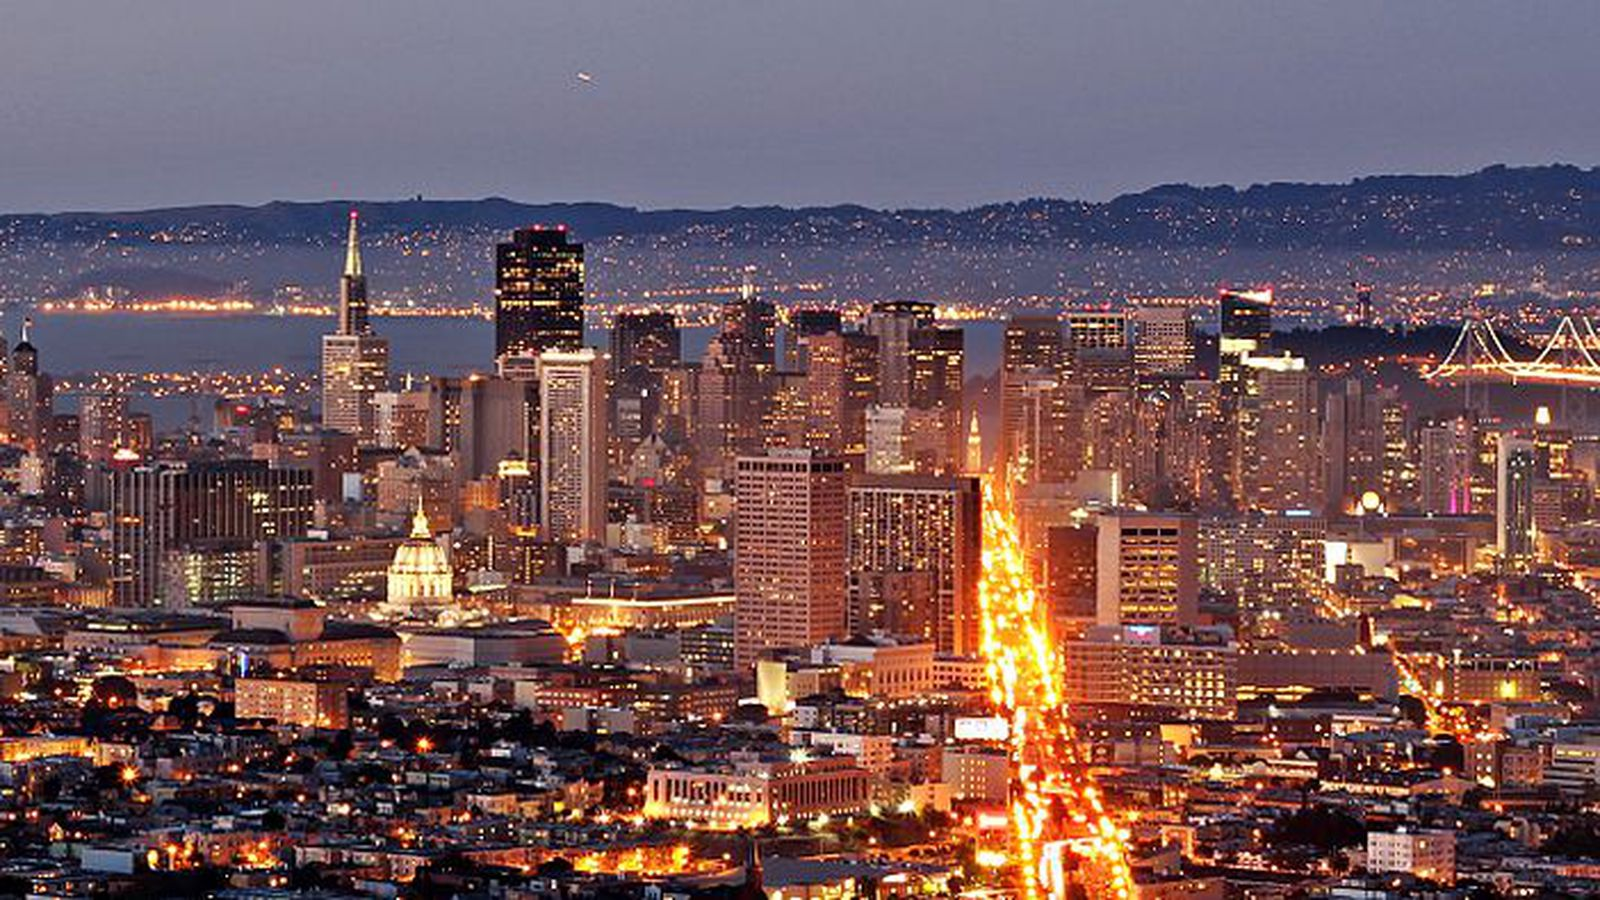 Find Your Ideal San Francisco Neighborhood - Curbed SF